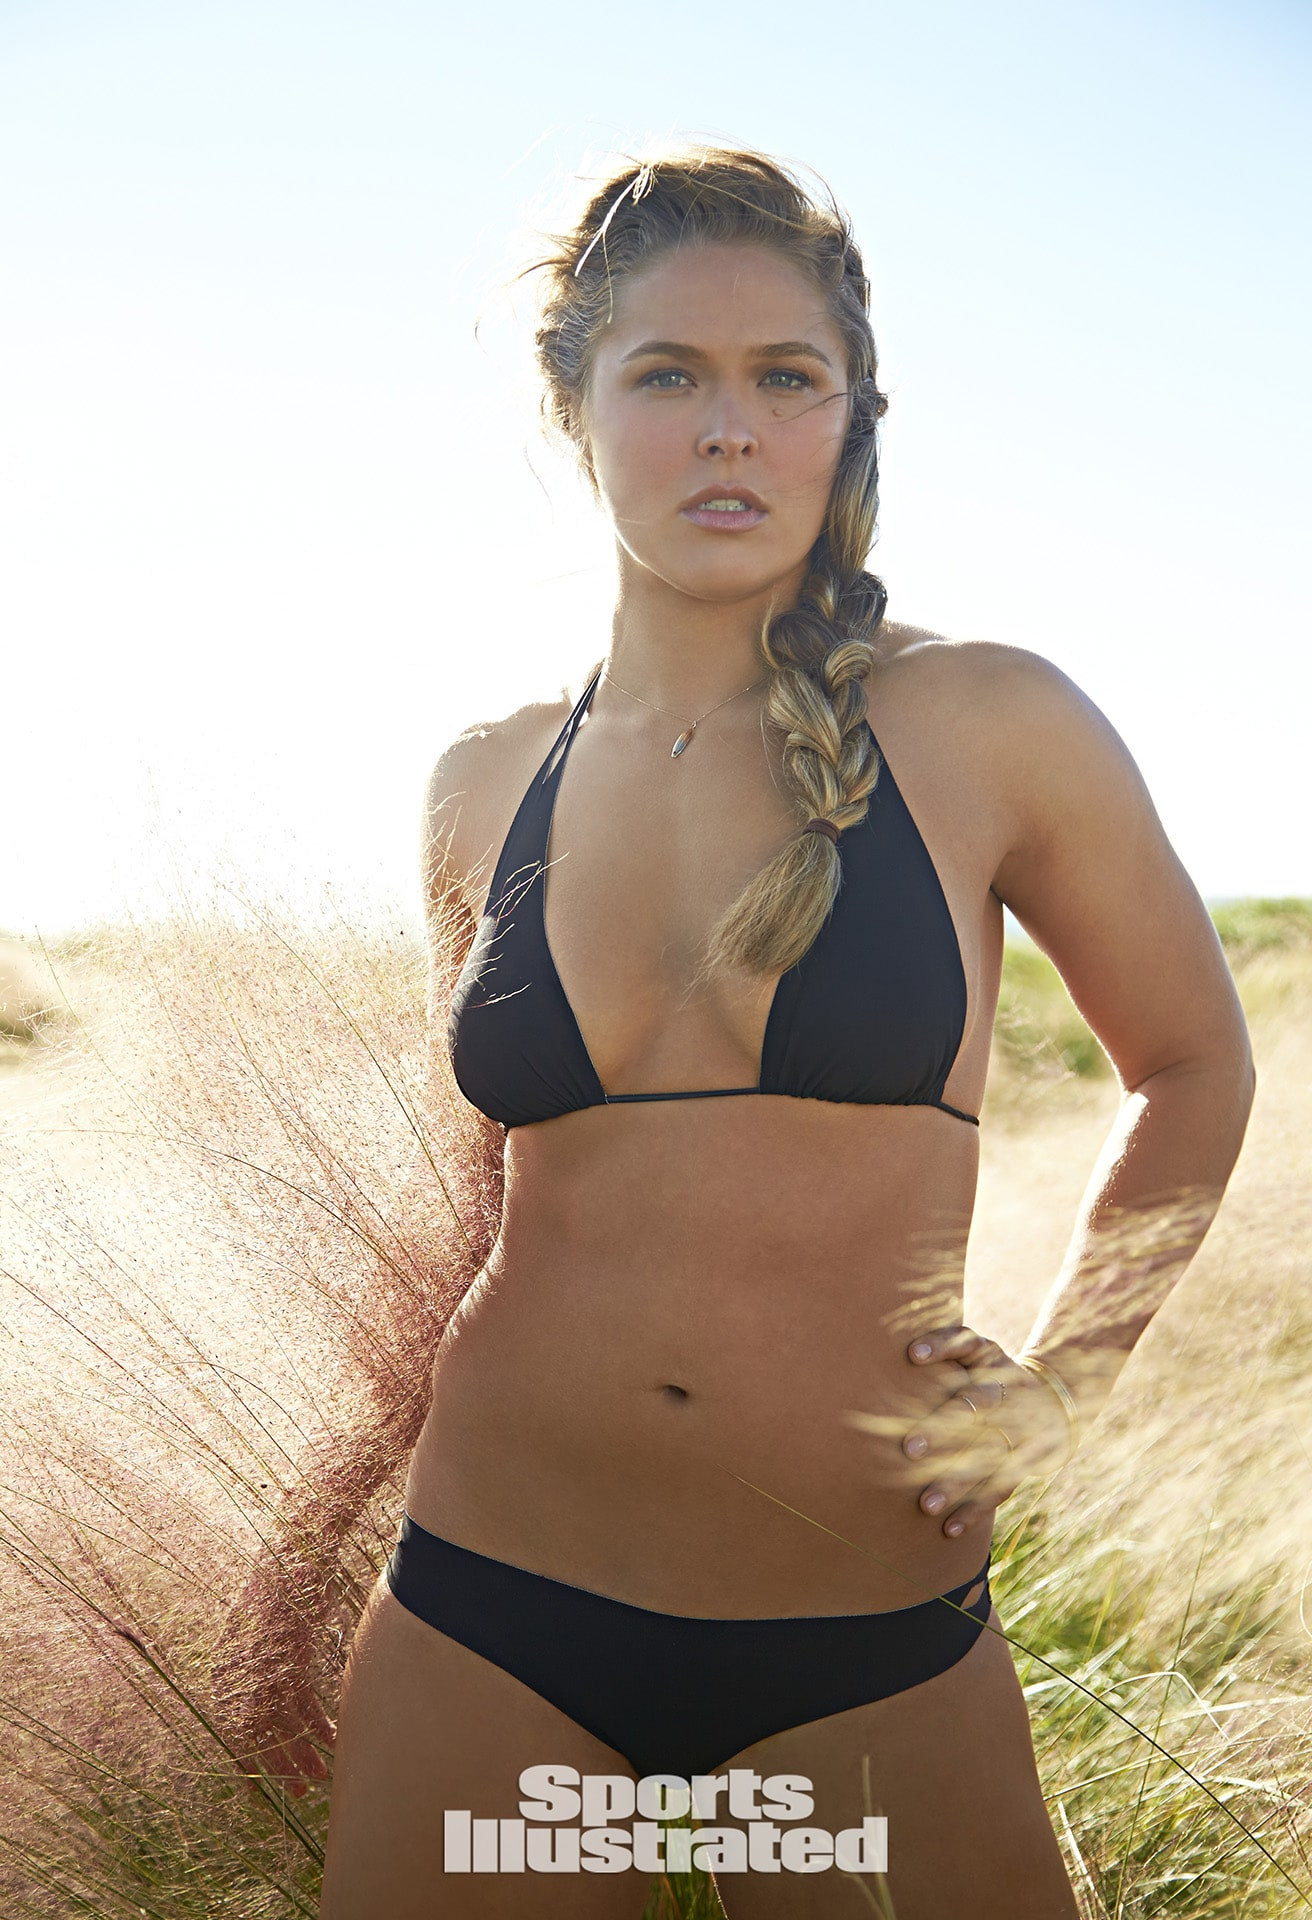 Ronda Rousey Sexy Big Boobs Pics on Black Bikini